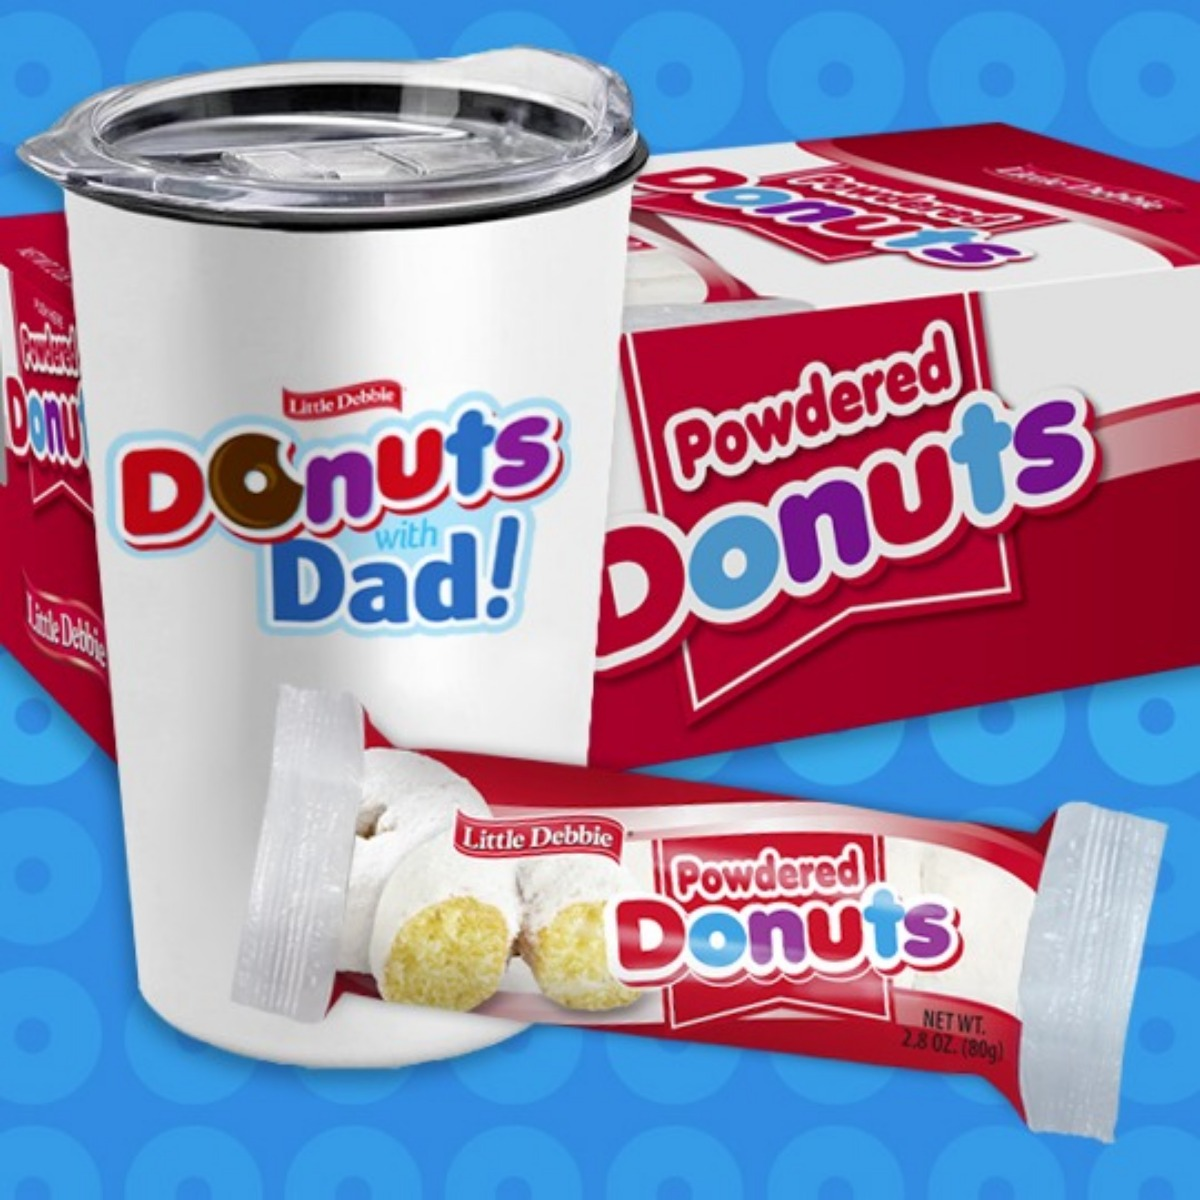 Little Debbie Donuts with Dad Gift Set